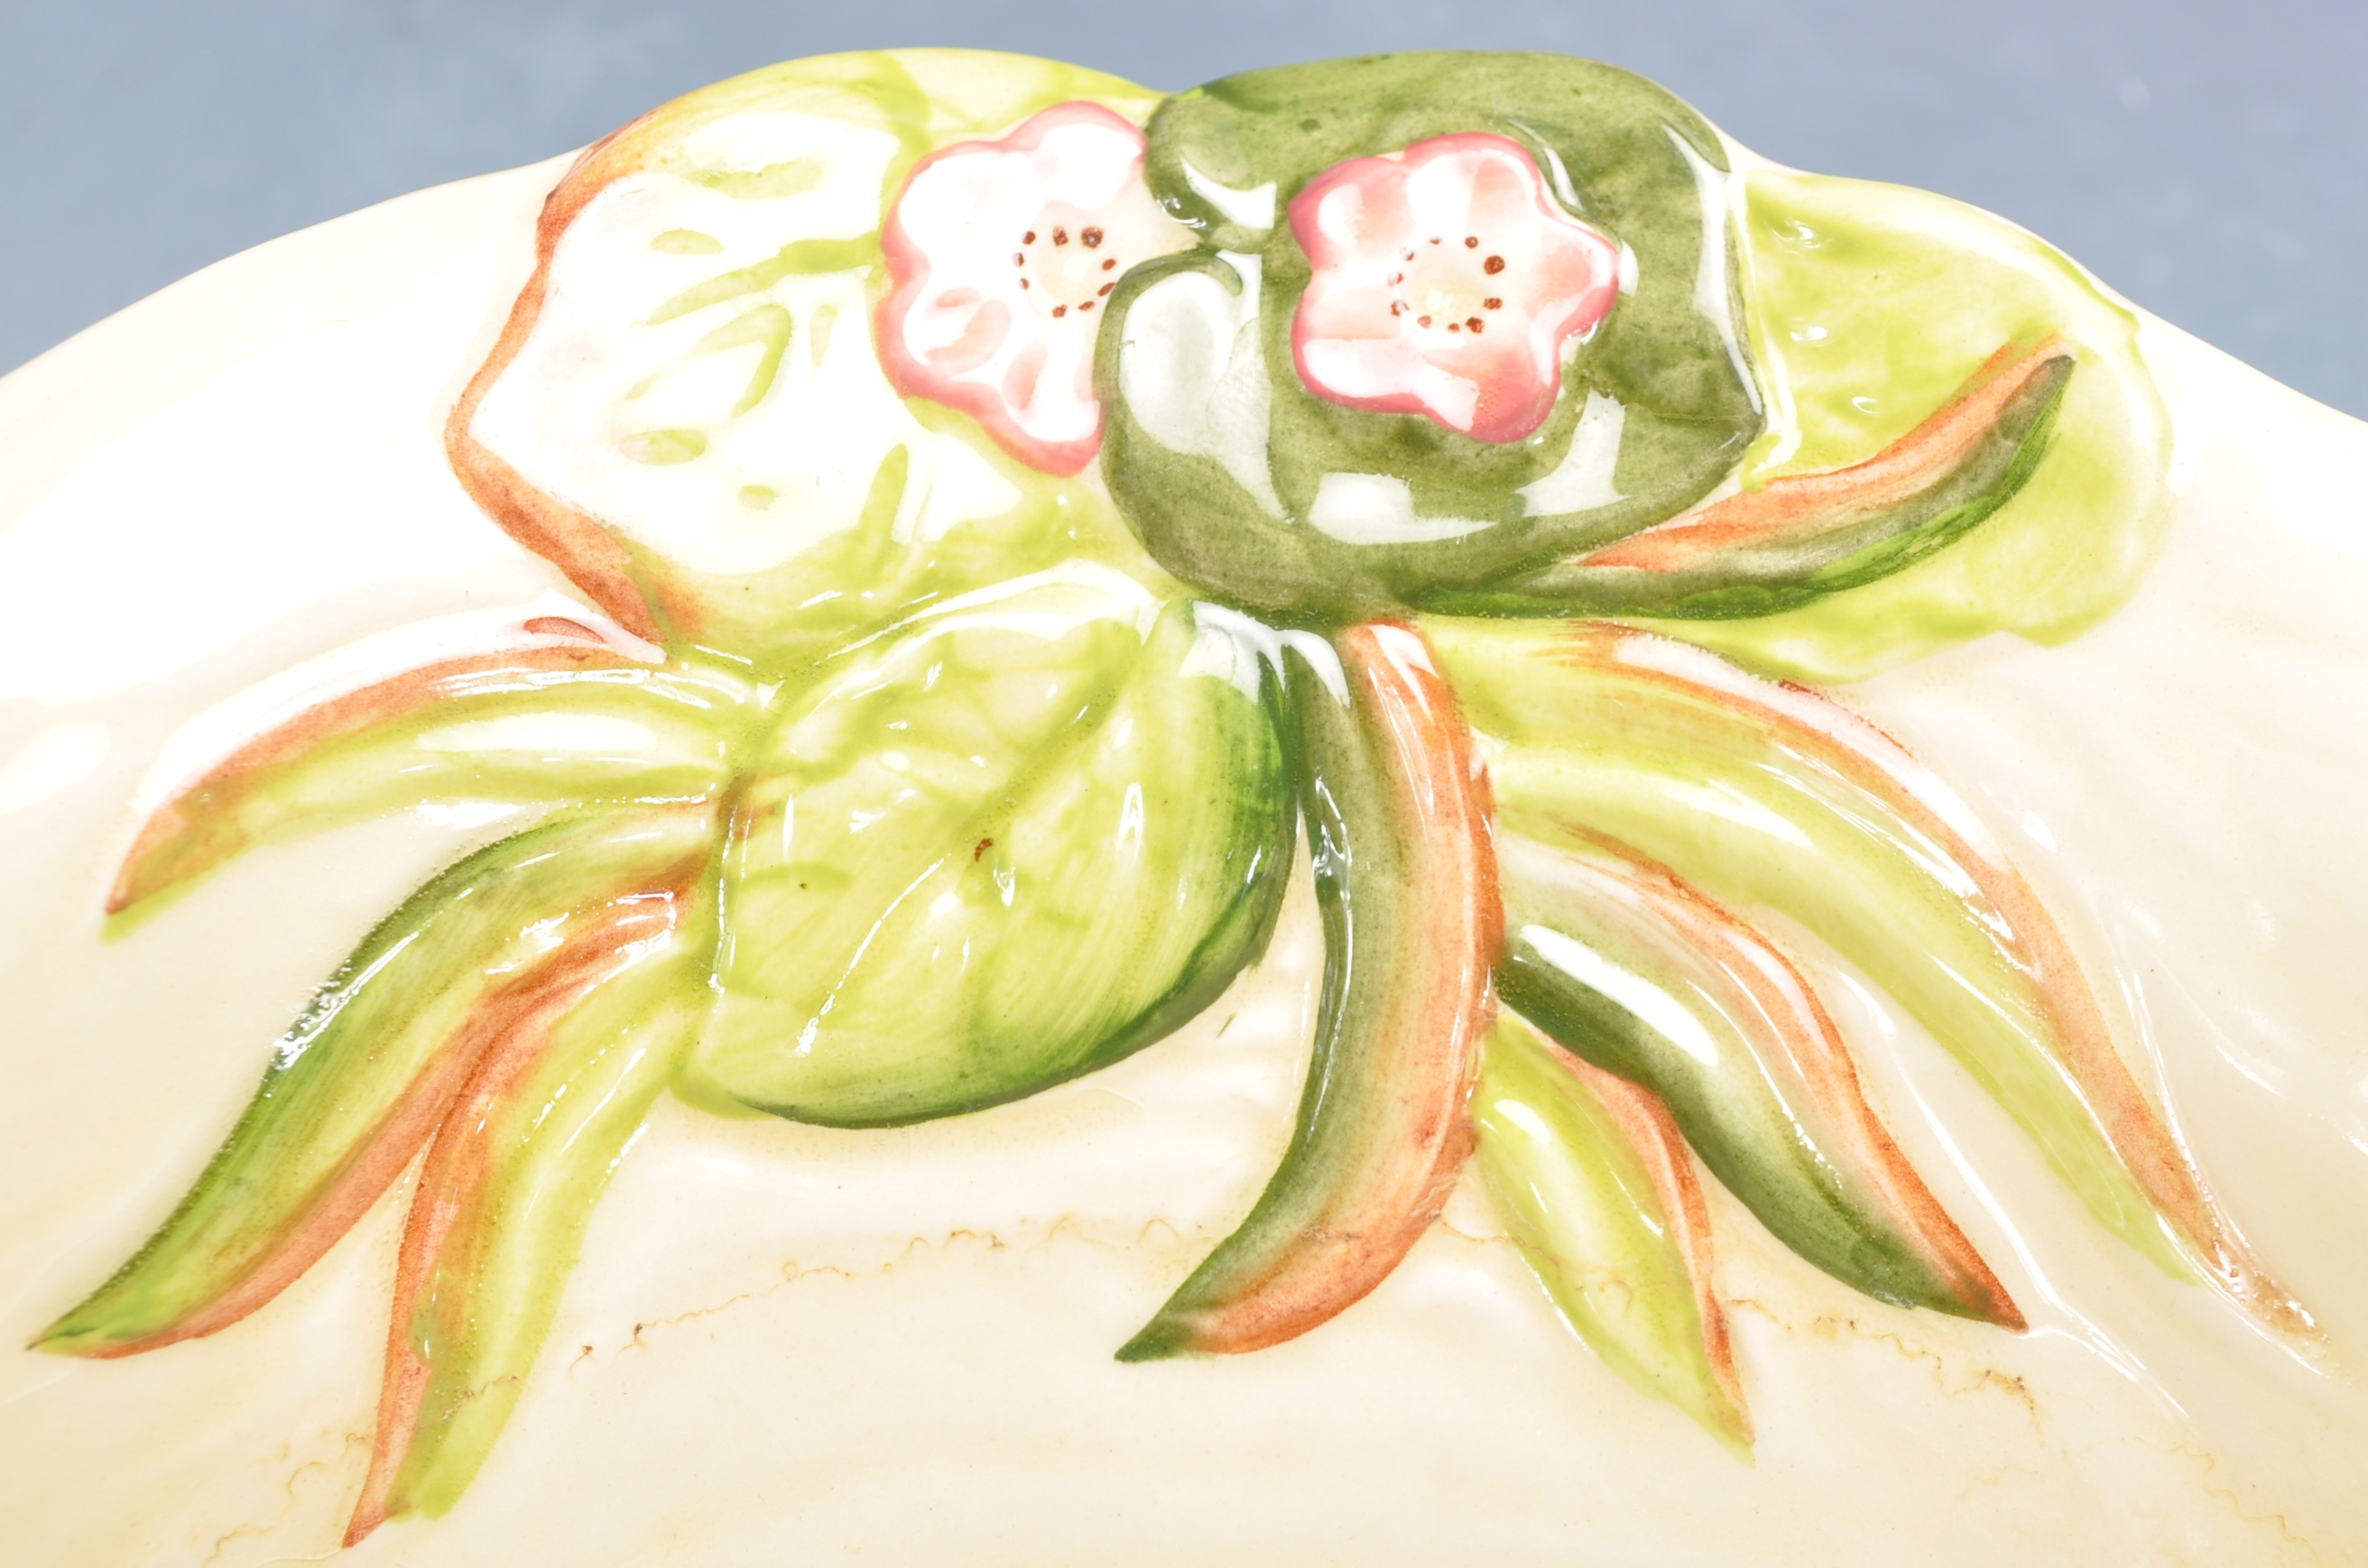 VINTAGE MID 20TH CENTURY CLARICE CLIFF BOWL WITH OTHERS - Image 5 of 8